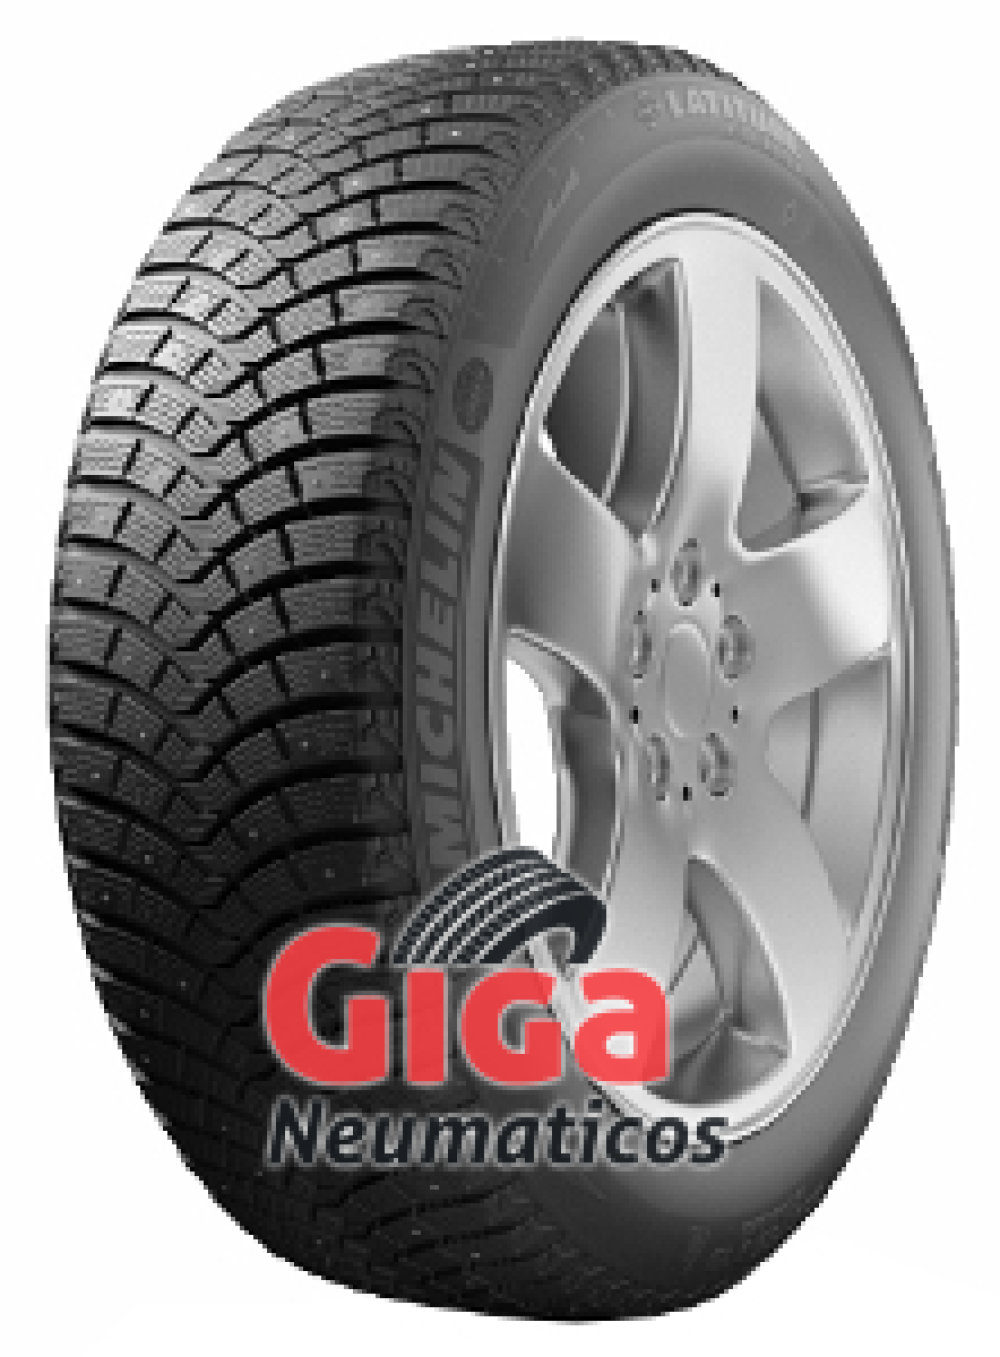 Michelin Latitude X-Ice North 2+ ( 225/60 R17 103T XL, con sistema de anclaje de clavos )